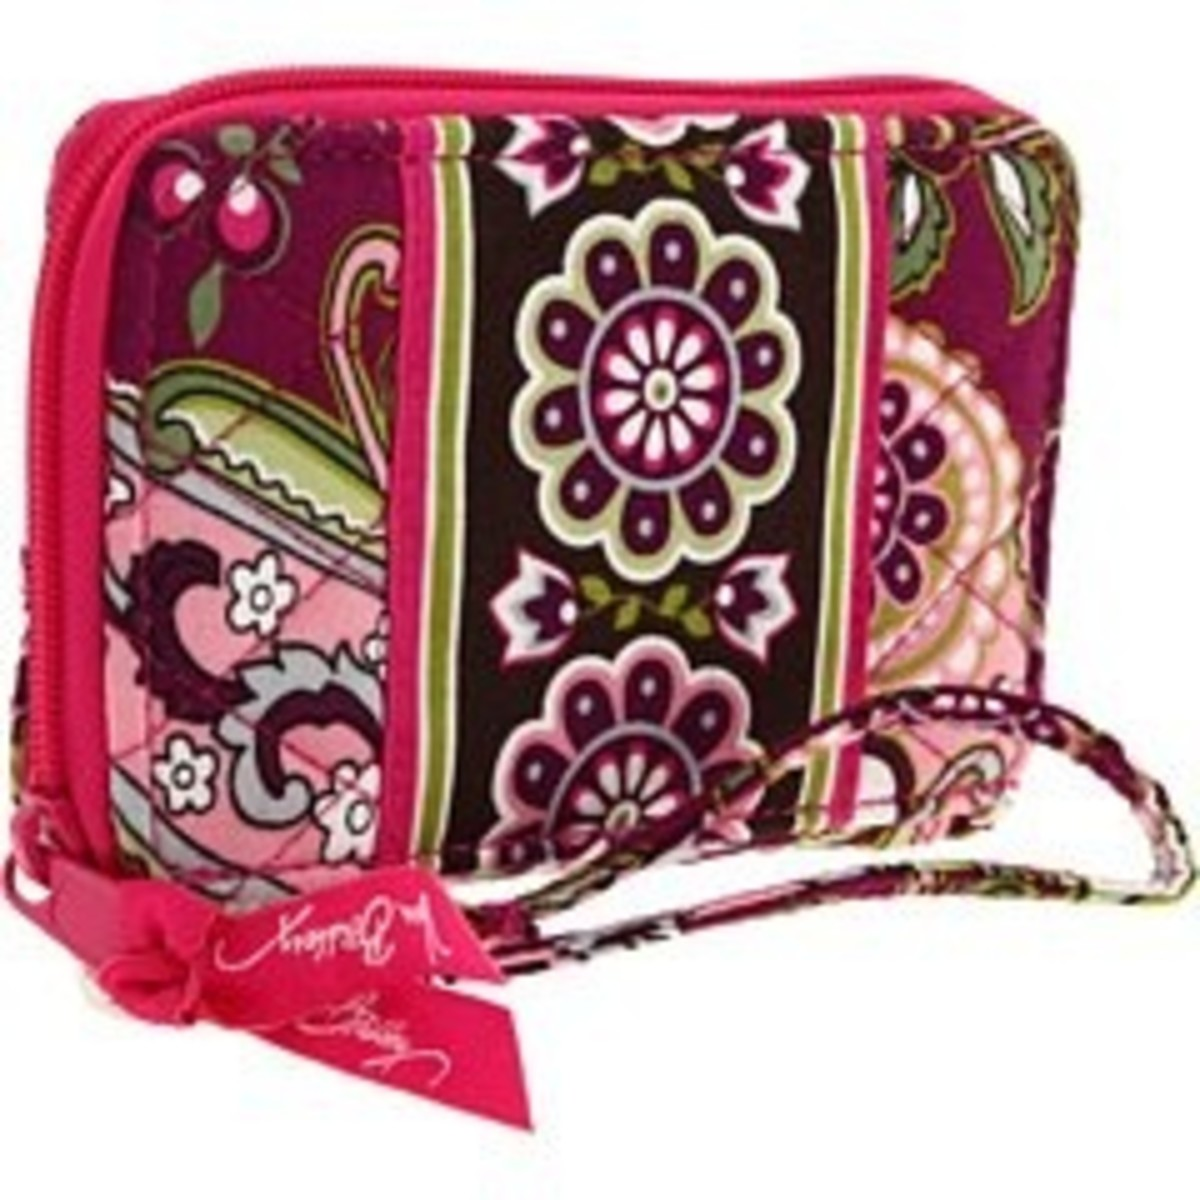 Vera Bradley wristlets come in fun and colorful patterns